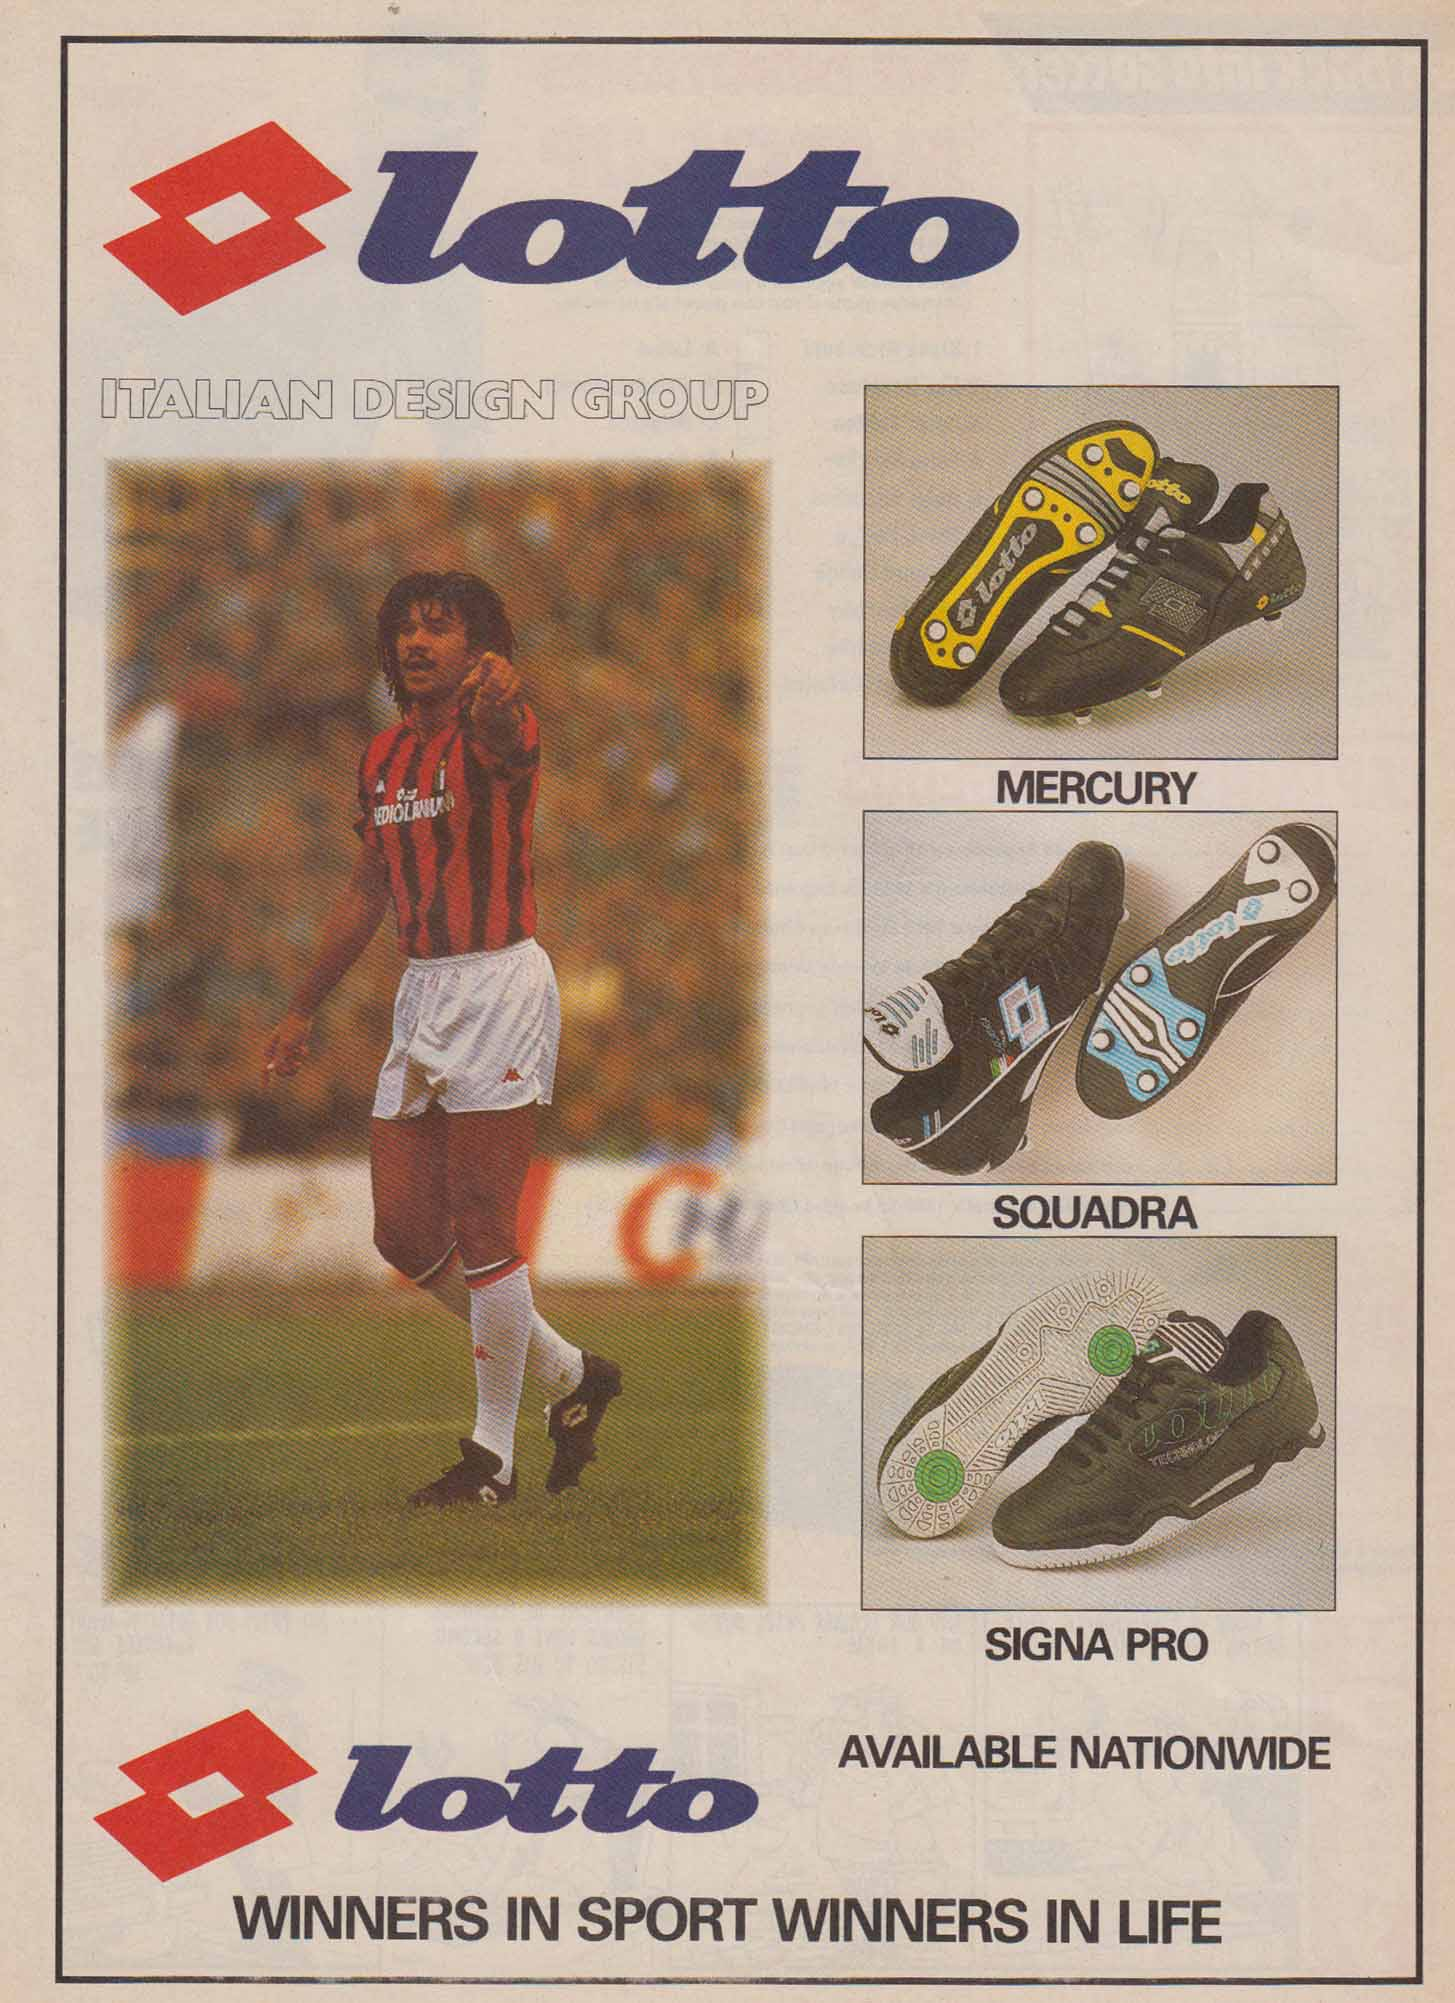 Retro Football Boot Adverts Soccerbible